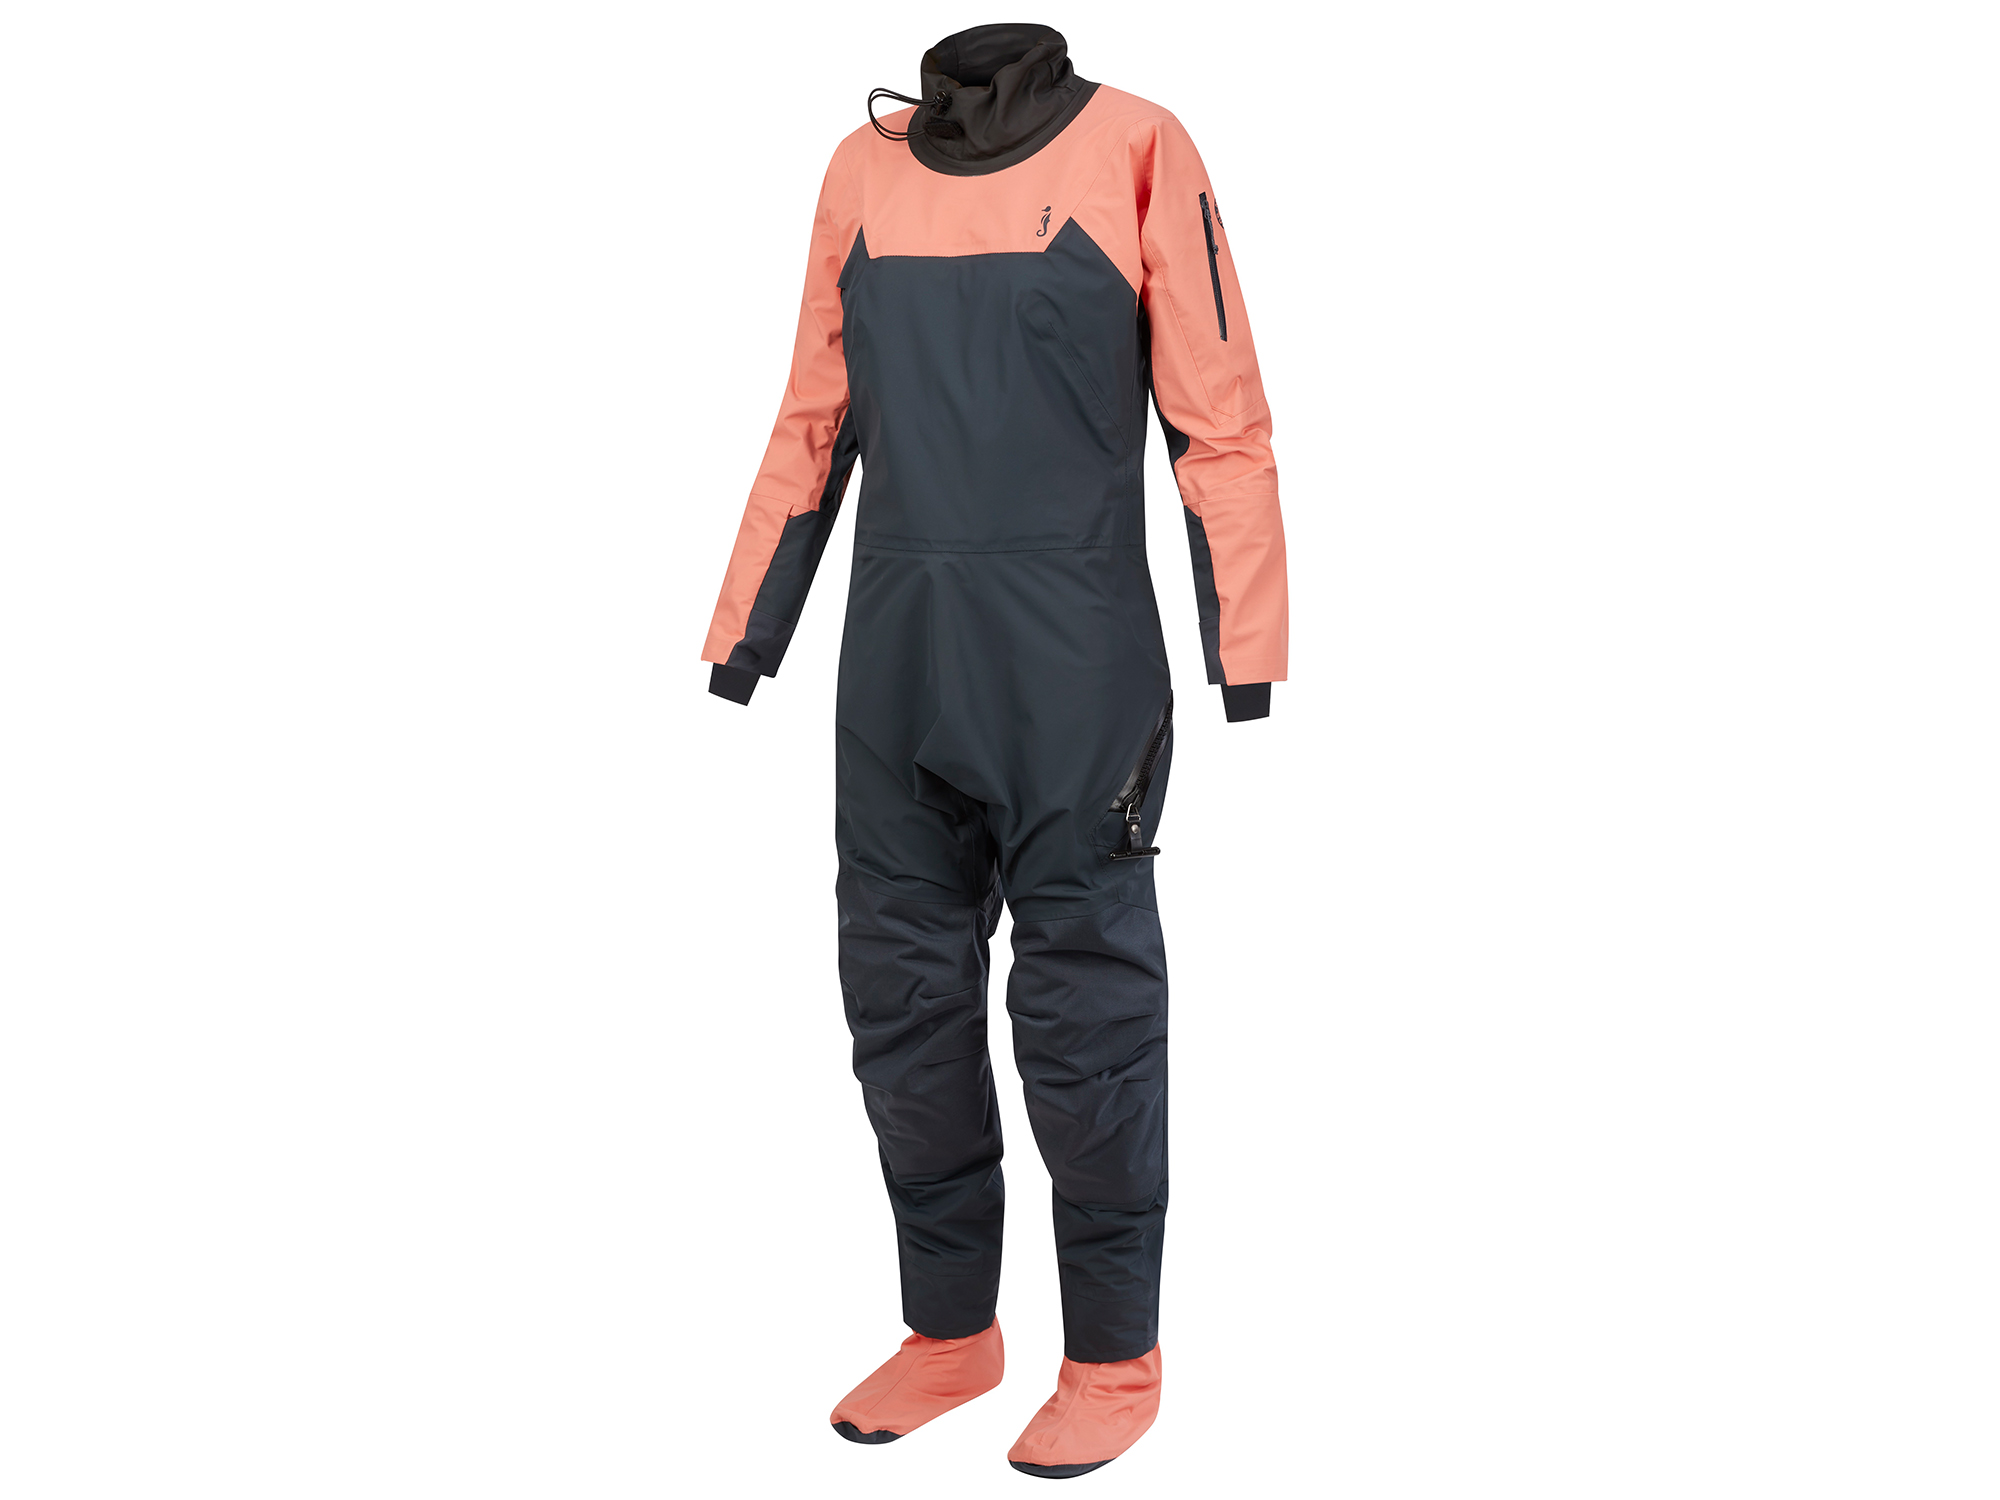 Mustang Survival women's Helix Dry Suit in dark gray/coral